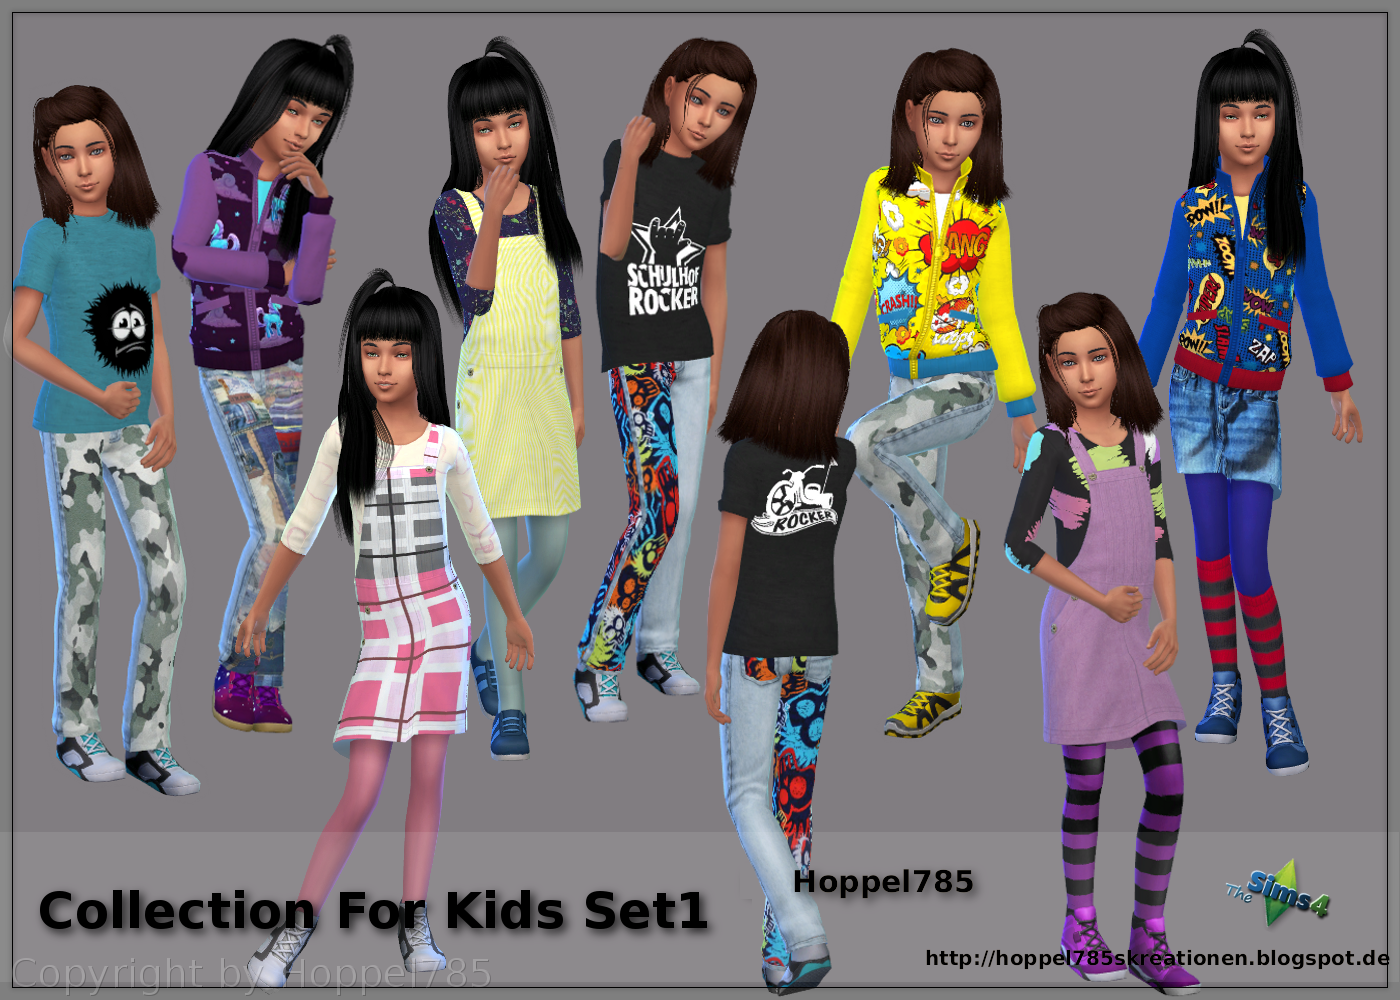 Kid's Clothing Collection by Hoppel785